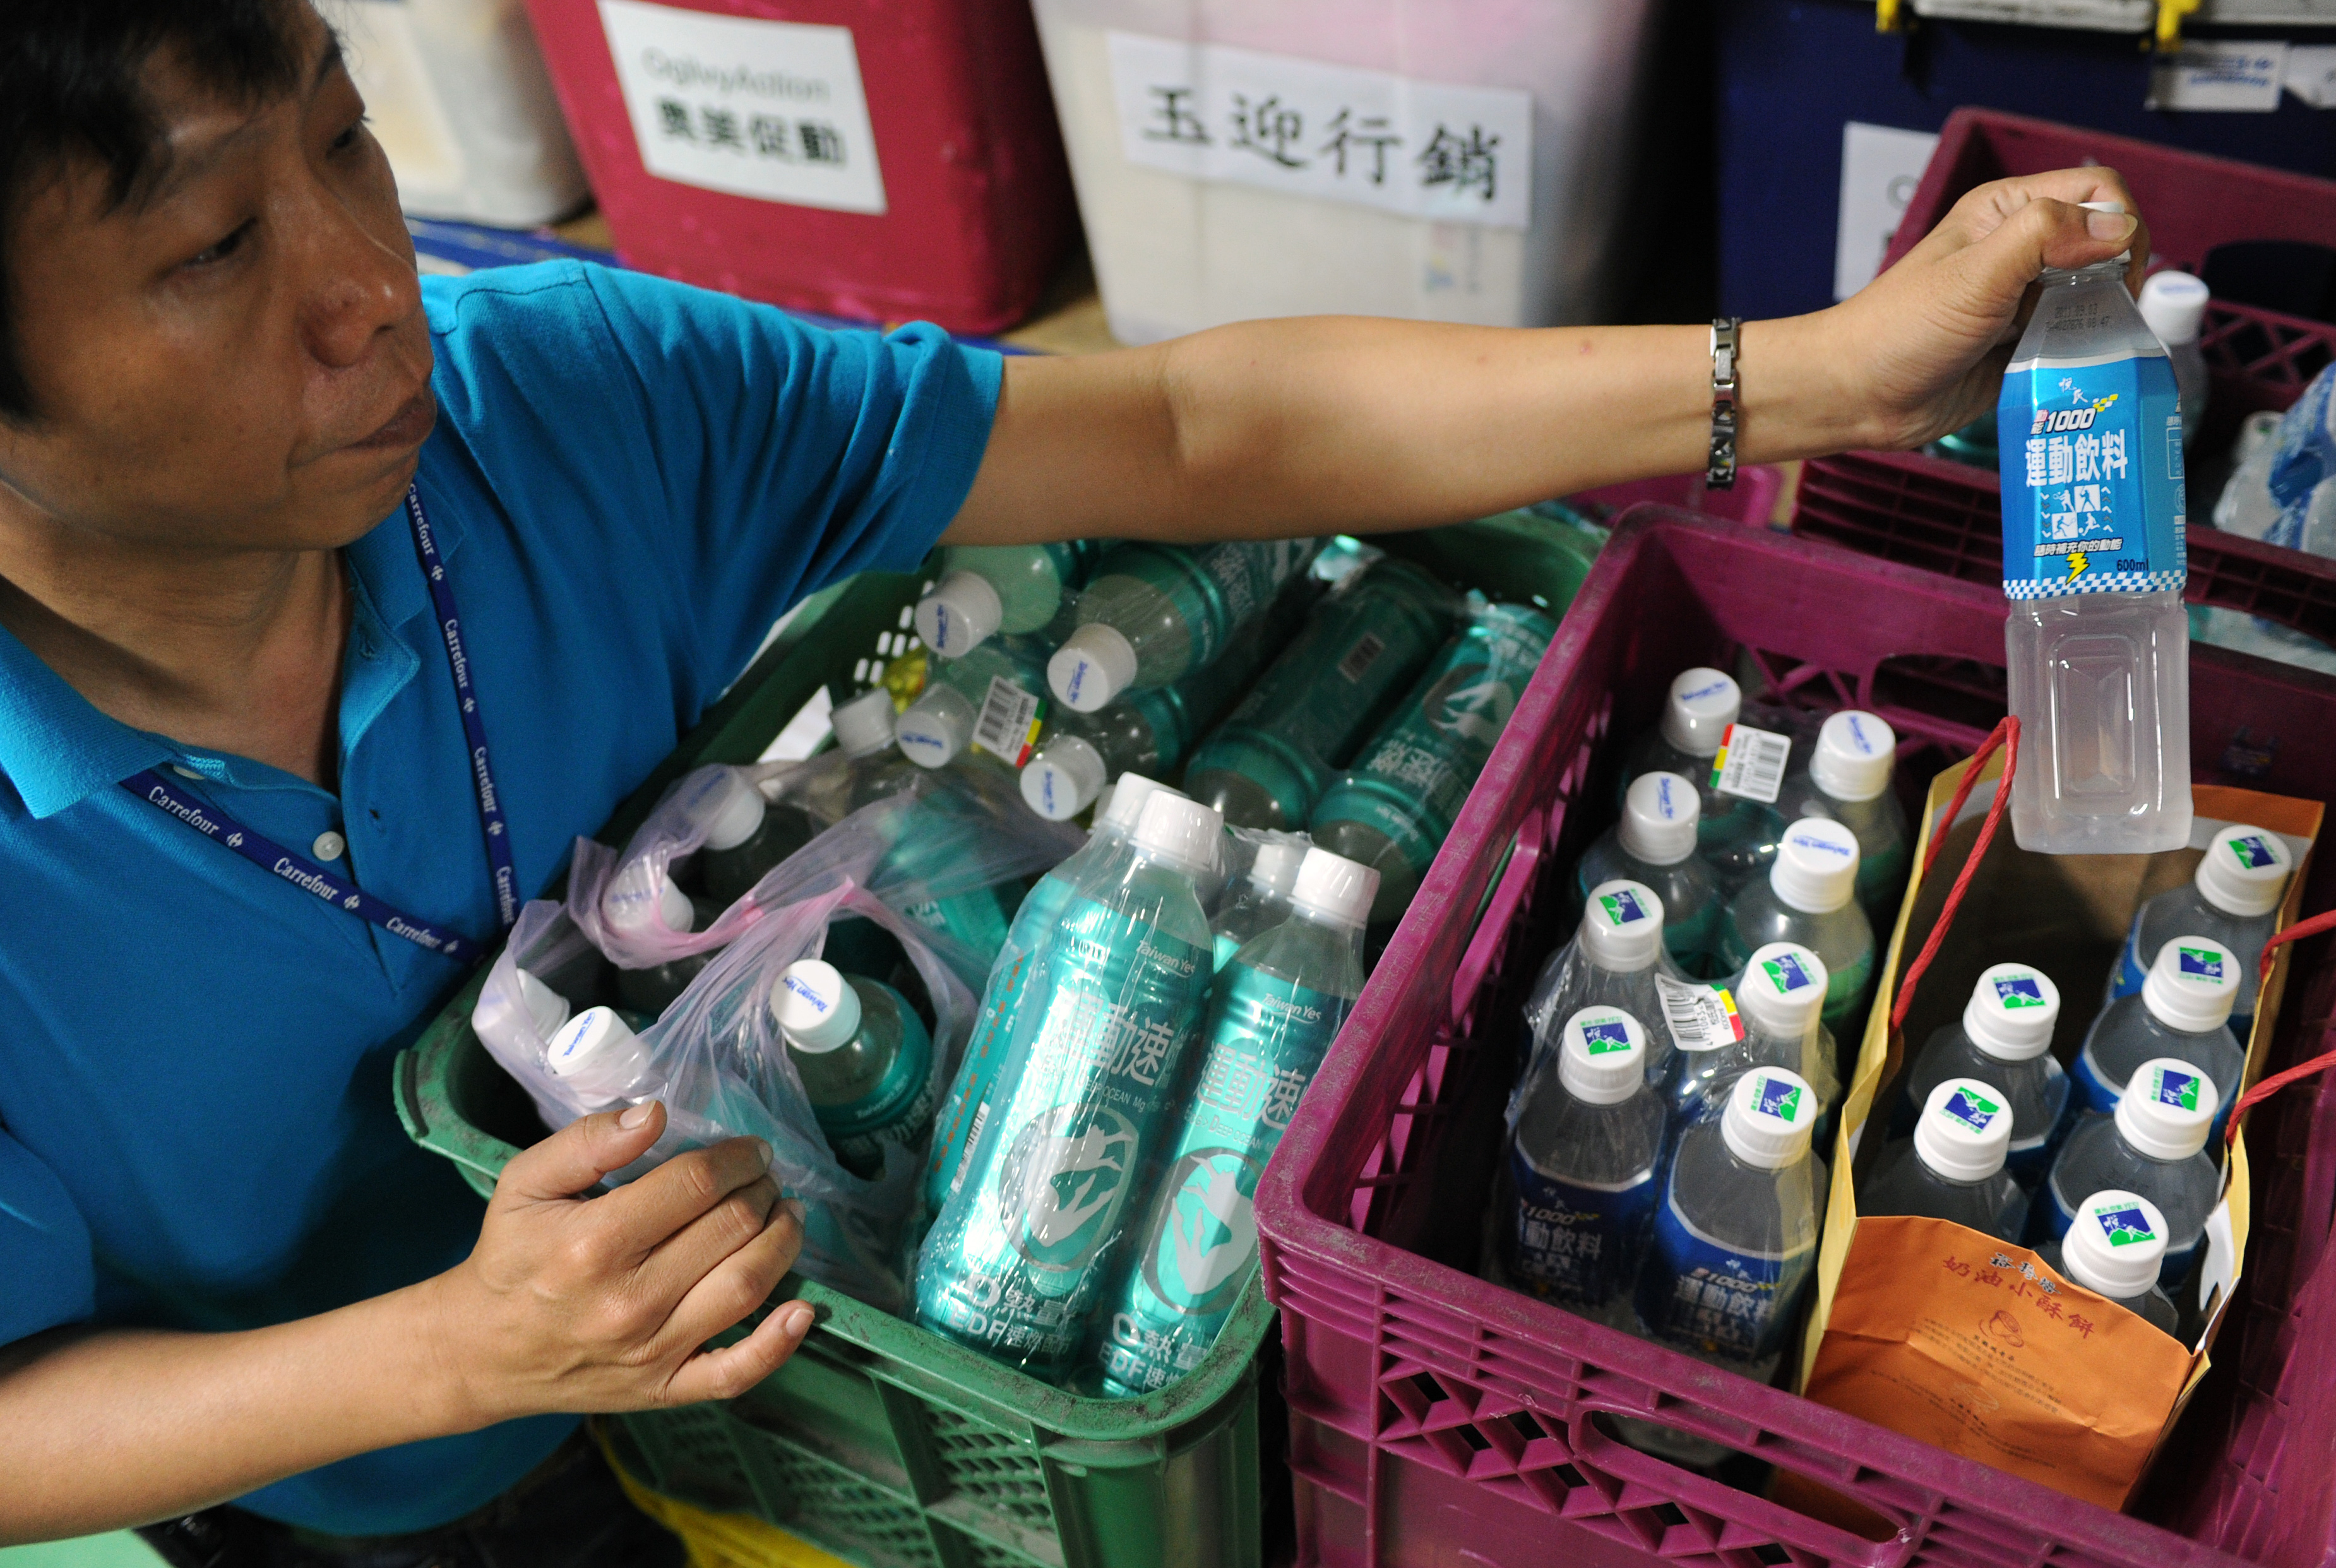 A worker displays a sports drinks containing a platicizer called DEHP after removing at a supermarket in Taiwan in 2011.